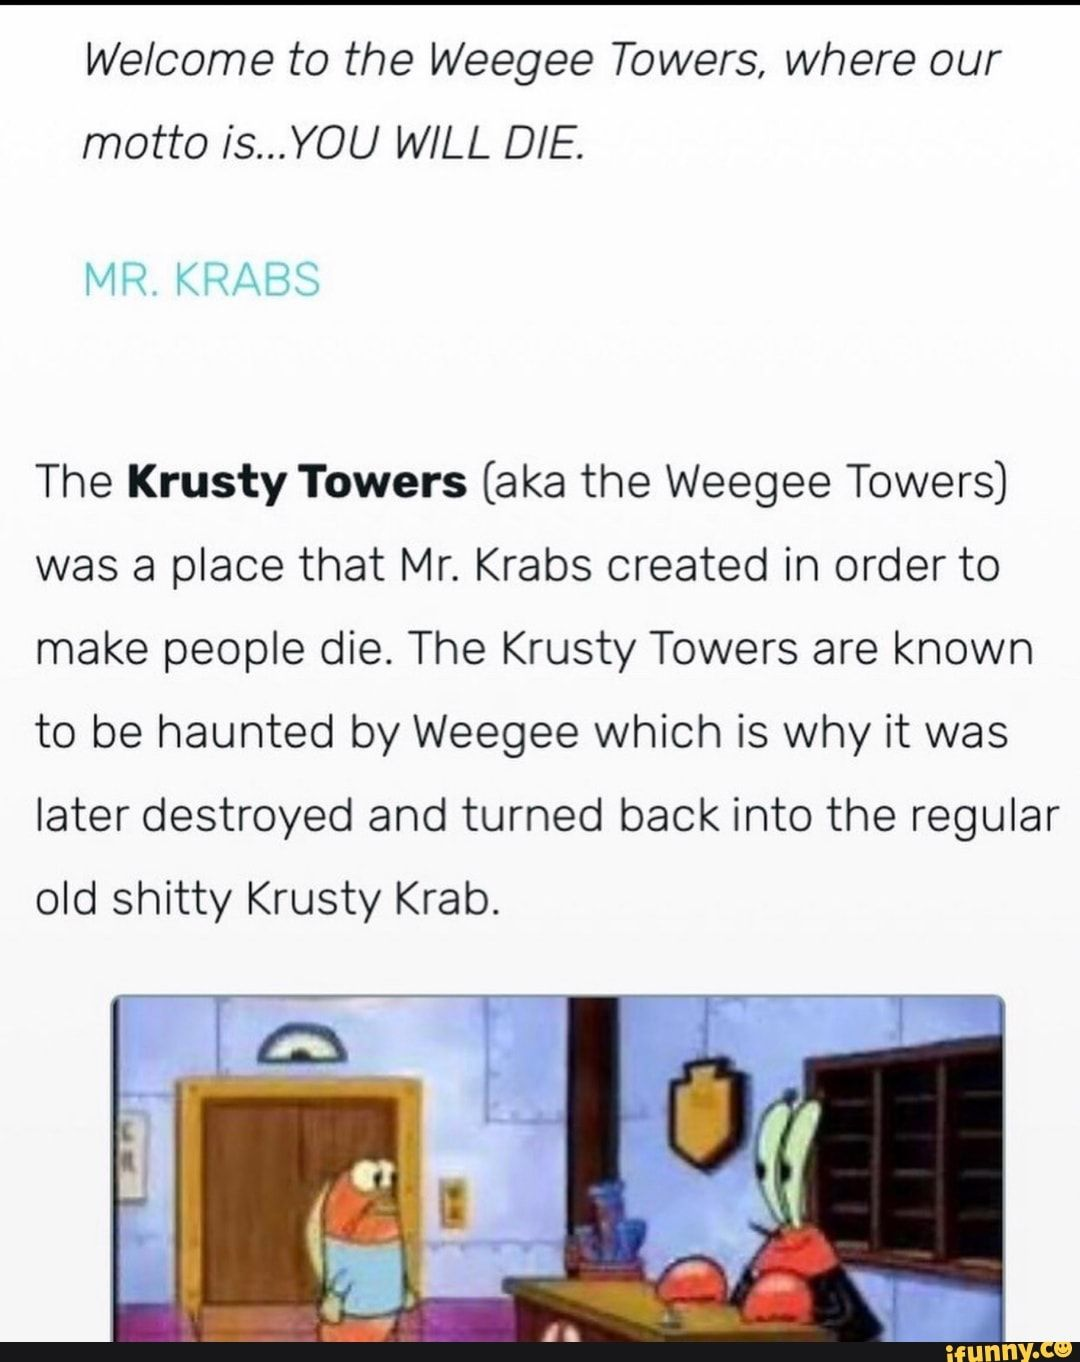 Krusty Krab Destroyed : krusty, destroyed, Welcome, Weegee, Towers,, Where, Motto, Is...YOU, KRABS, Krusty, Towers, Towers), Place, Krabs, Created, Order…, Haunting,